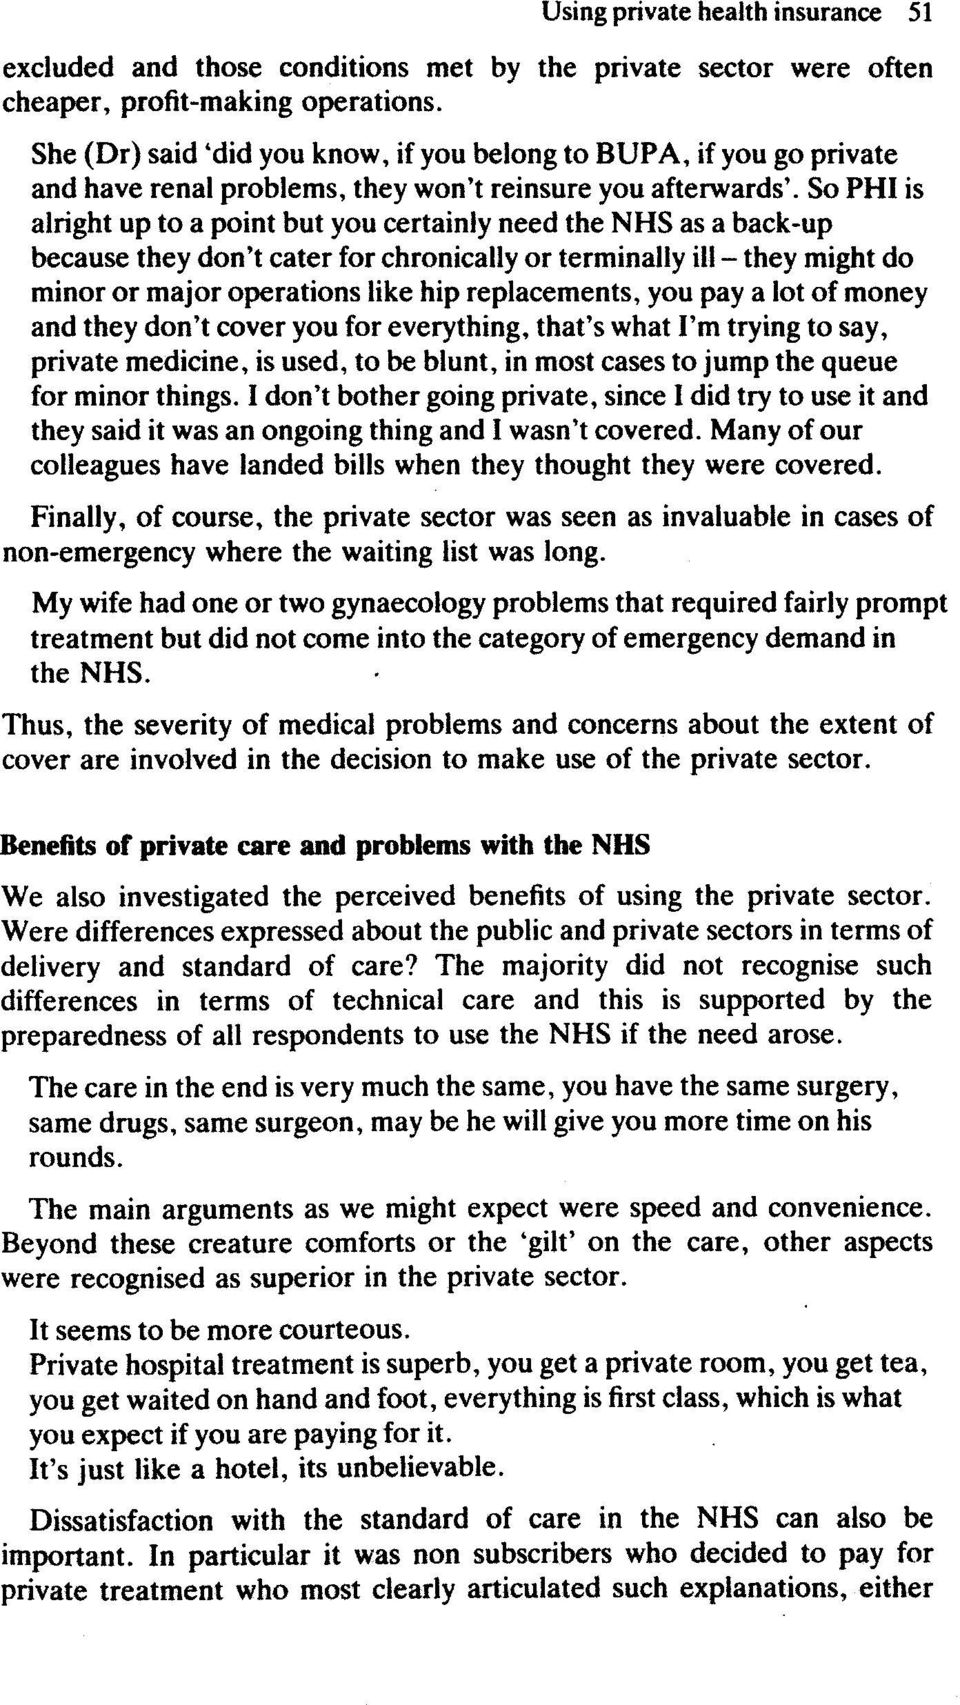 So PHI is alright up to a point but you certainly need the NHS as a back-up because they don't cater for chronically or terminally ill - they might do minor or major operations like hip replacements,